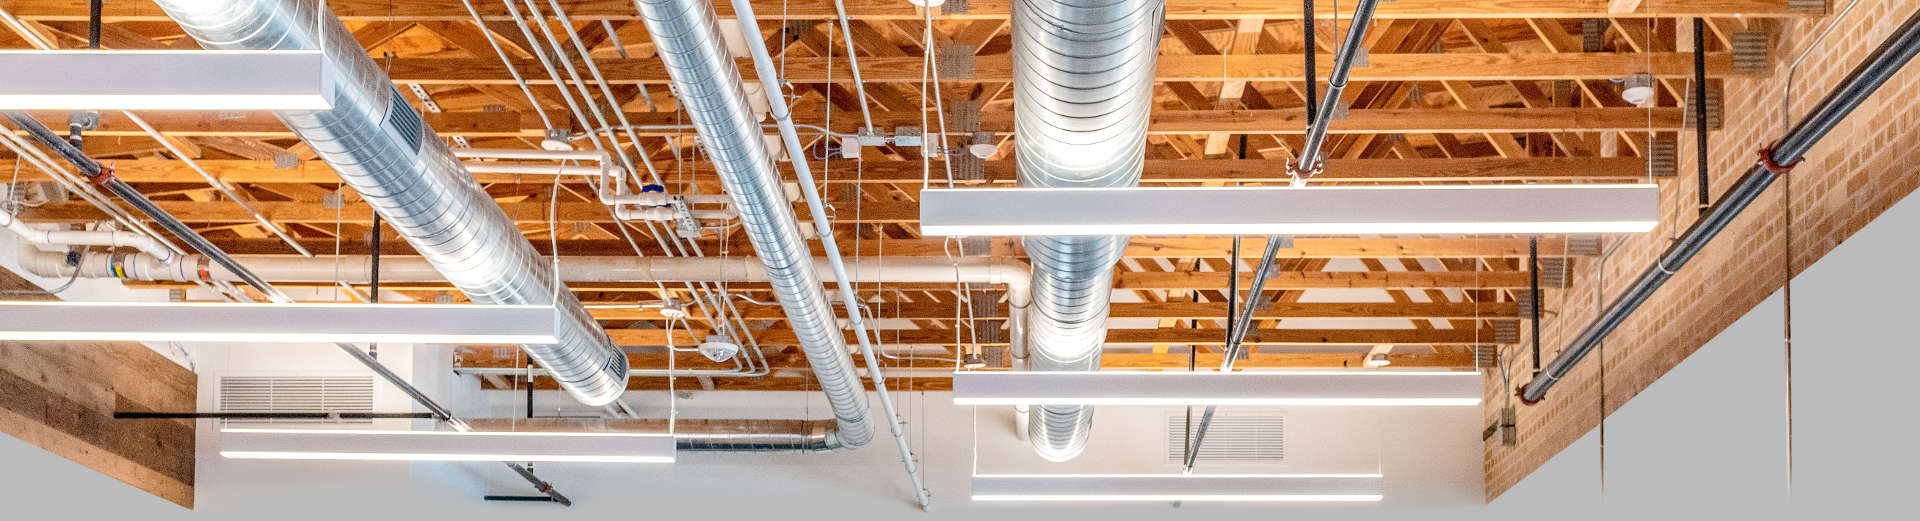 Ductwork and Plumbing